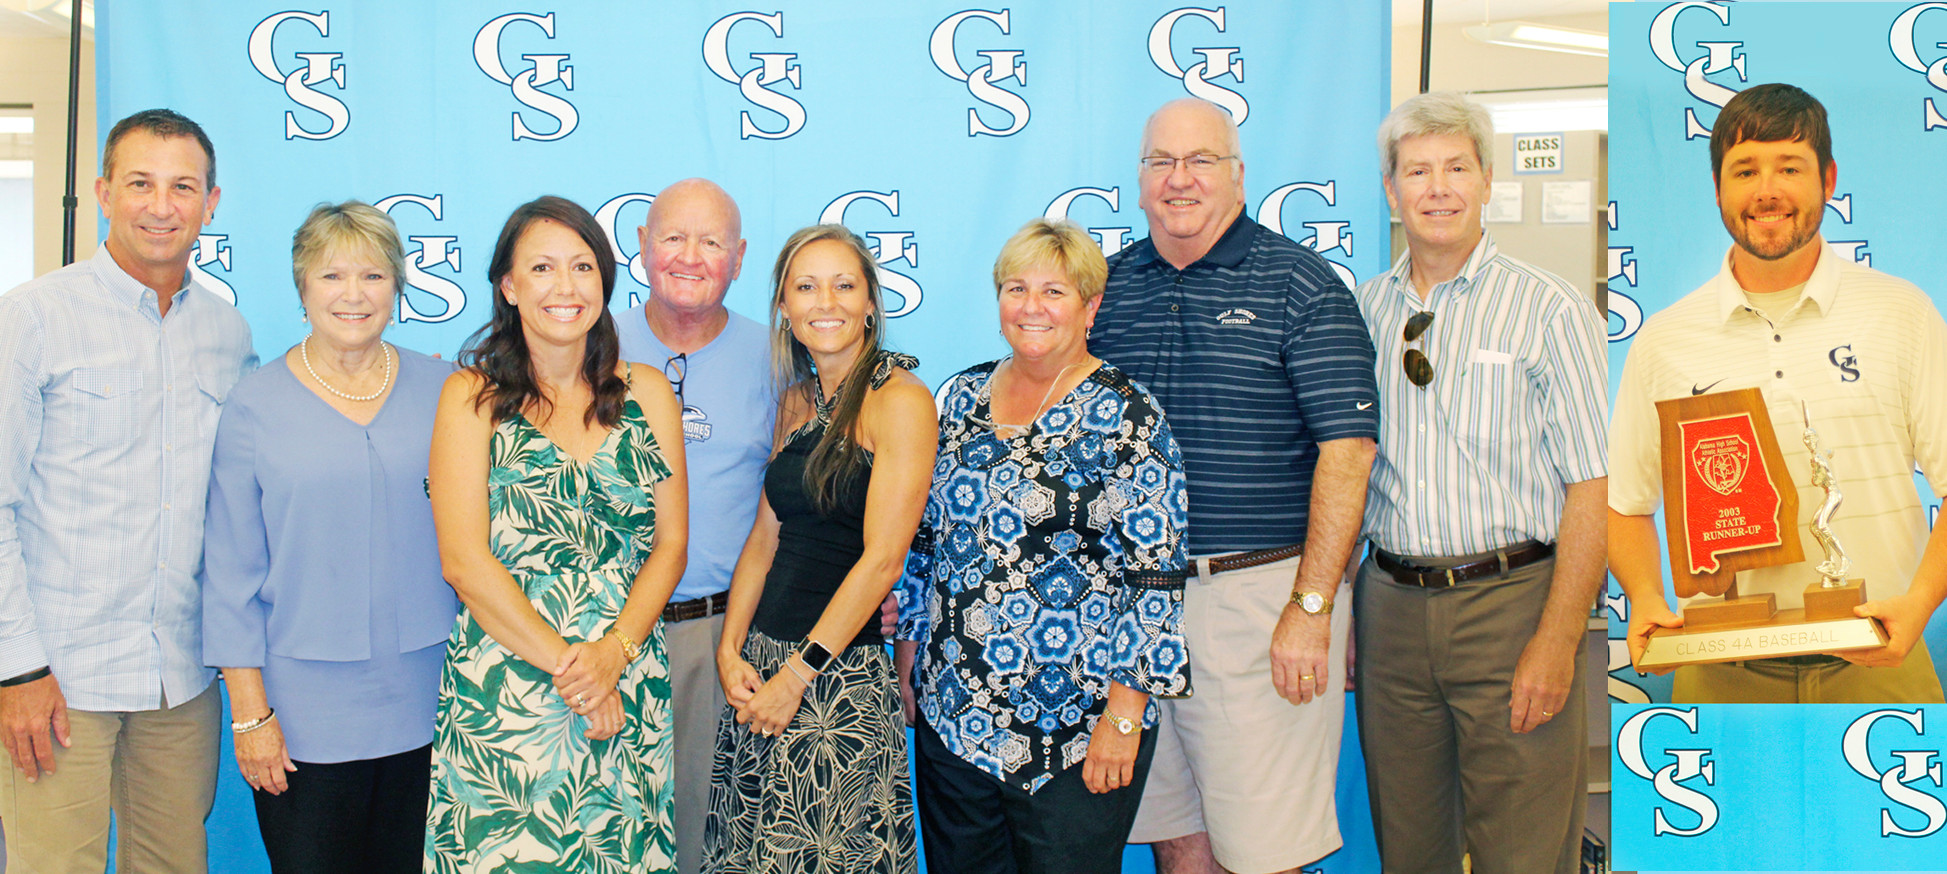 2017 GSHS Hall of Fame, from left: Wren Aaron, Andrea (Joseph) Holmes, Avery (Berrey) Forrest, Al Borchardt, Alisha (Hamrick) Stokes, Karen Collins, David Lee, and Thomas Lee. Inset, Colbey Cleckler. Not pictured, Glenn Lewellen.